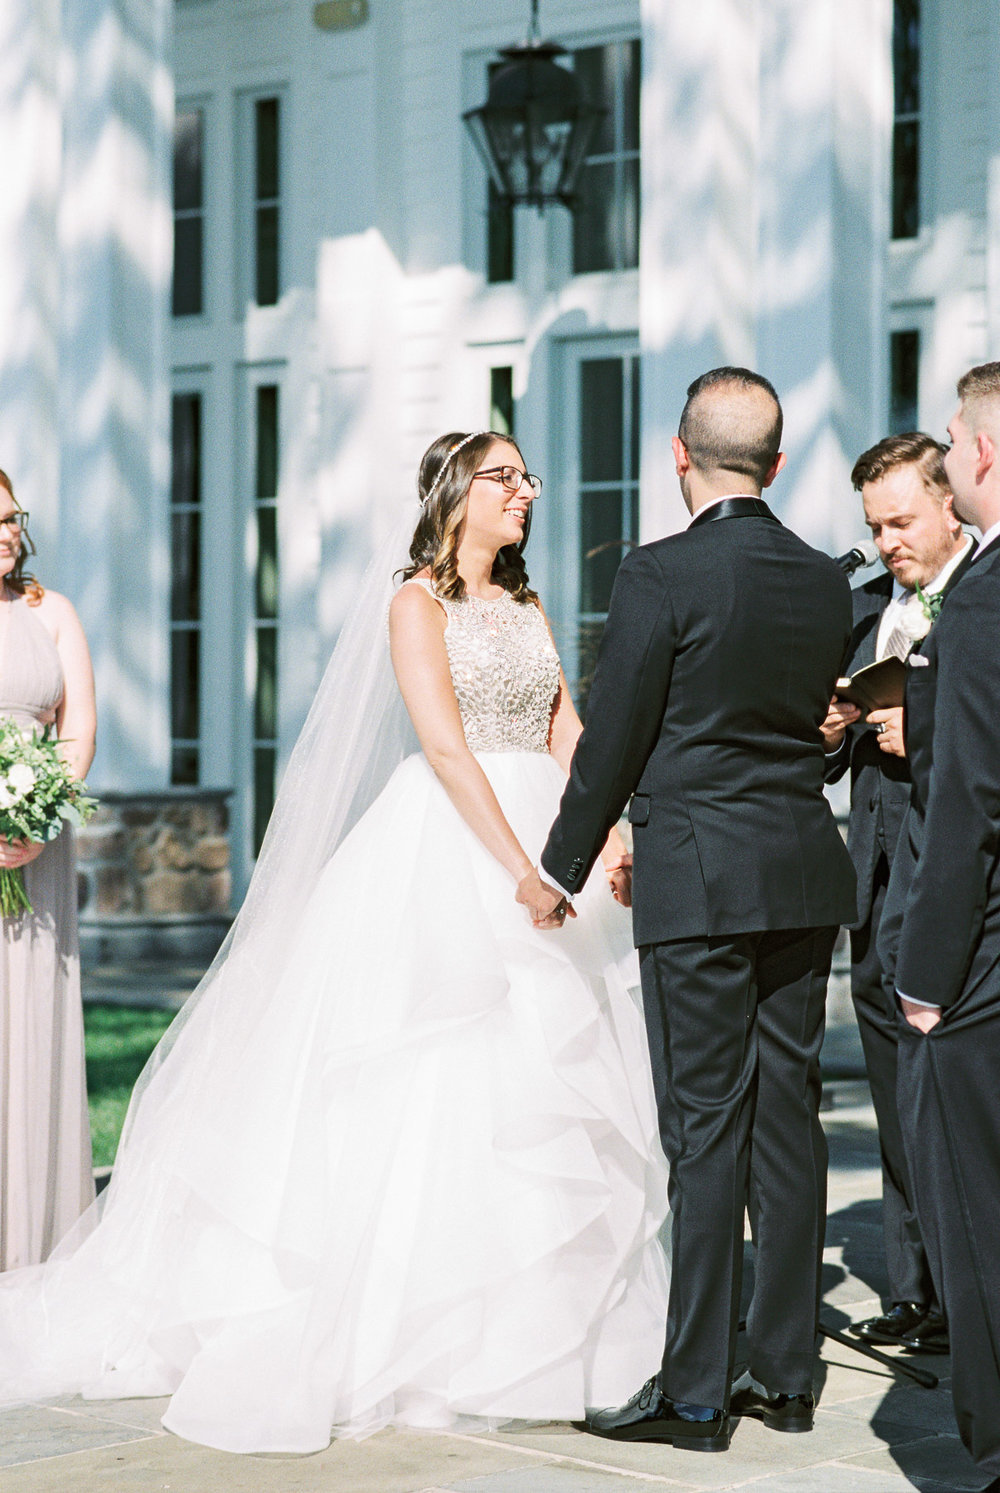 Outdoor ceremony at The Ryland Inn